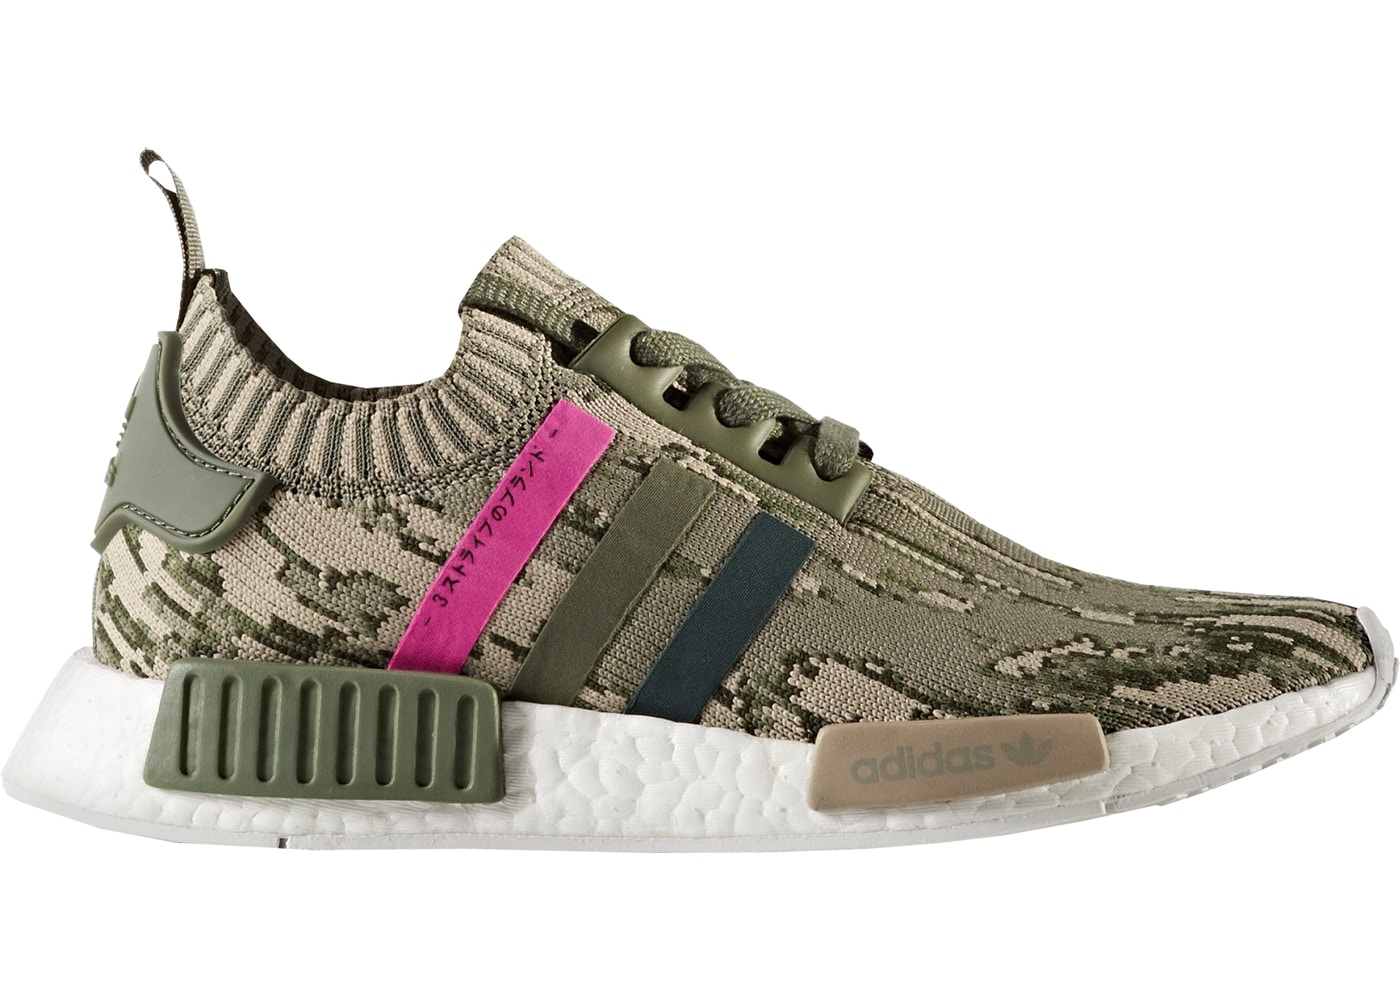 94649d143 adidas NMD R1 Glitch Camo St Major (W) - BY9864